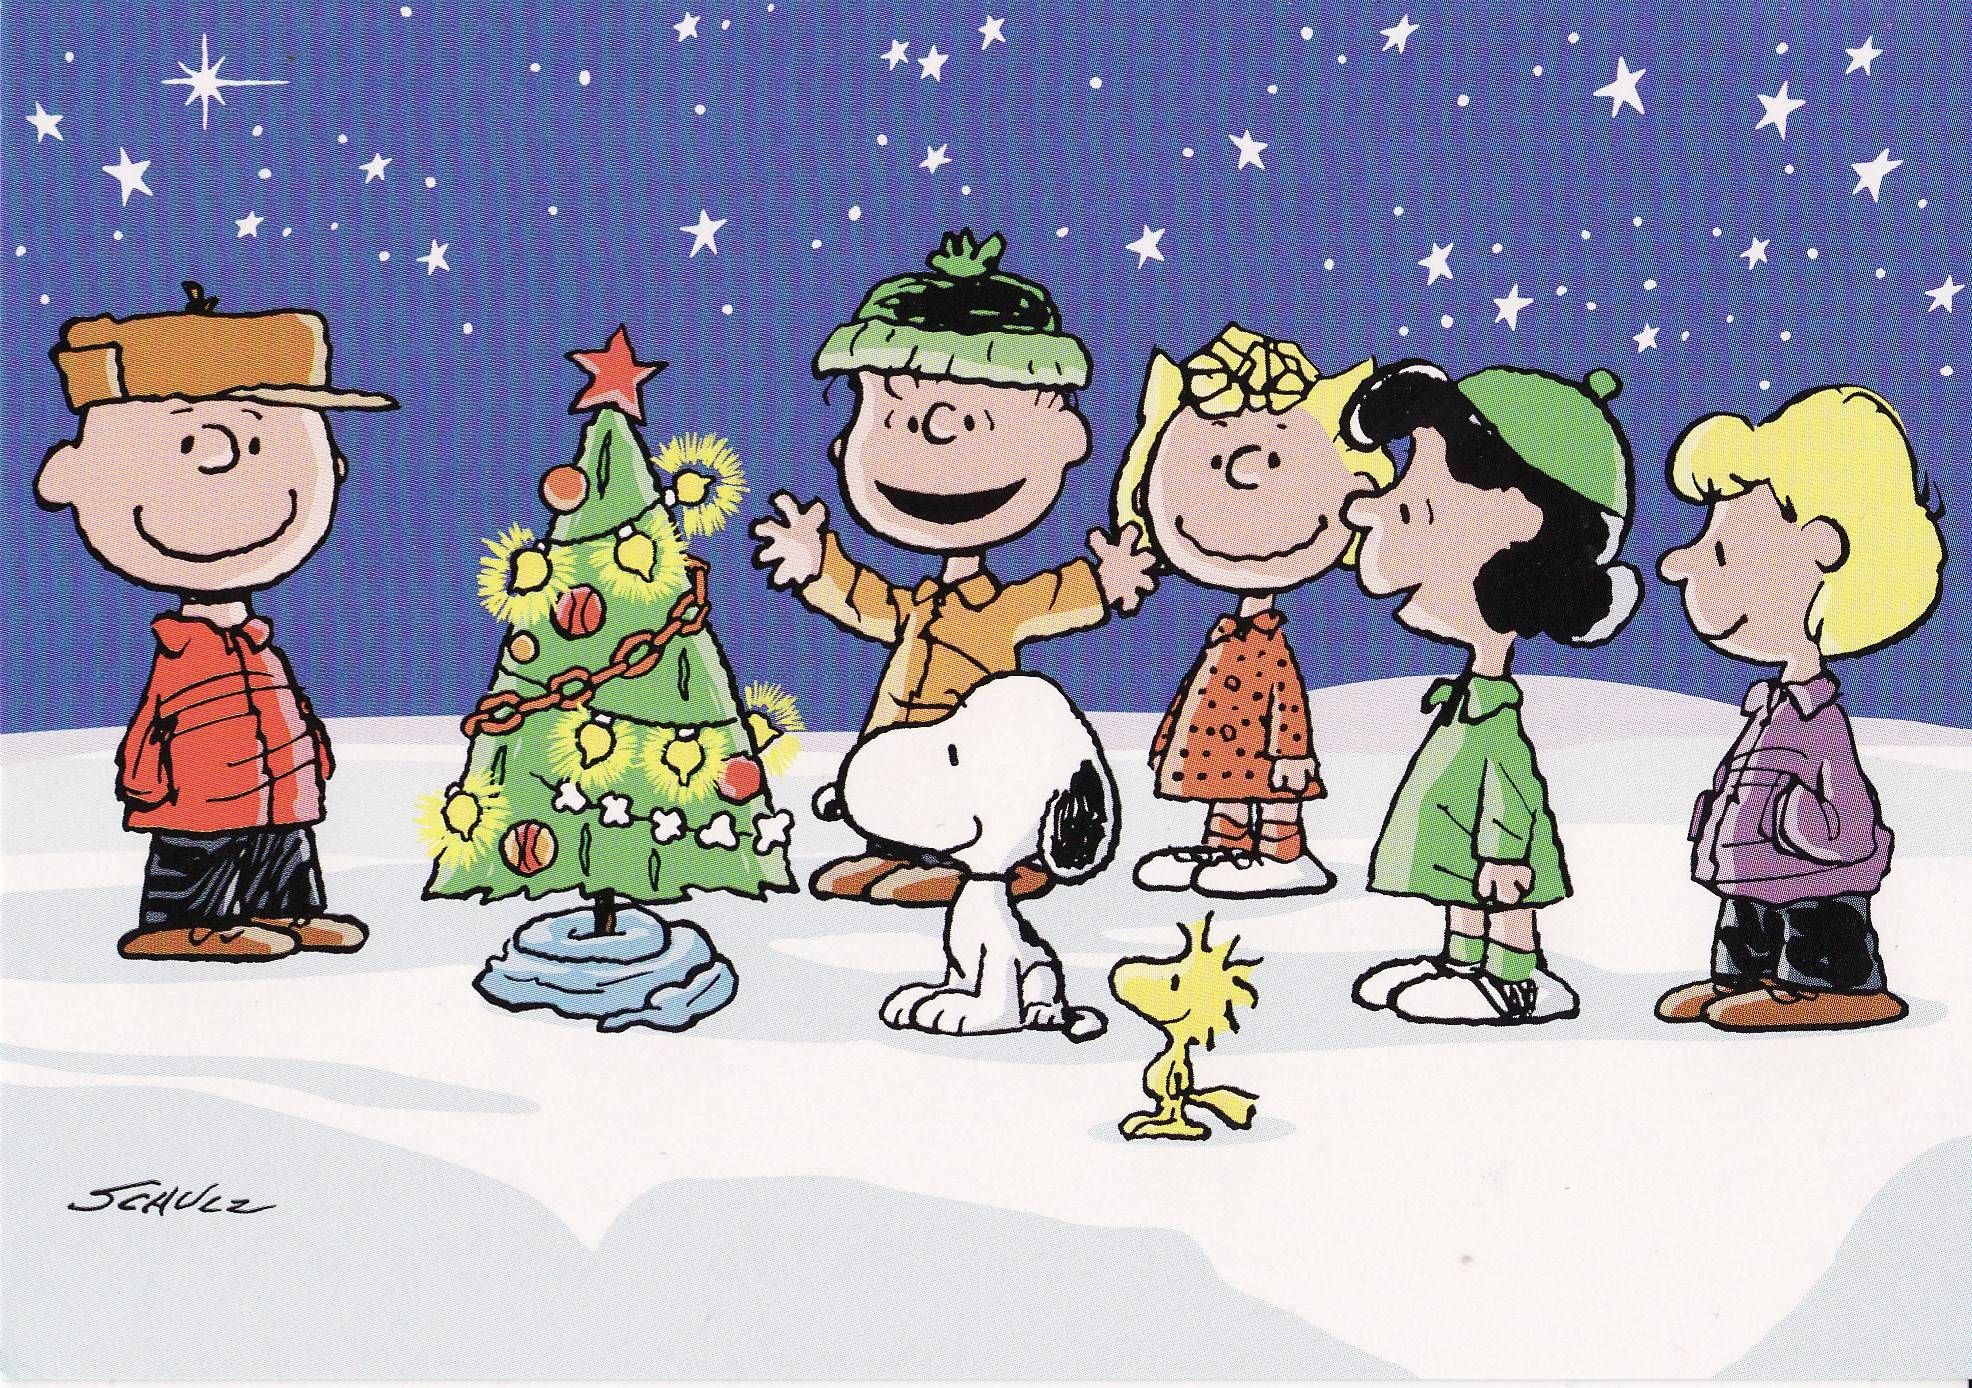 Charlie Brown Christmas Wallpaper pictures